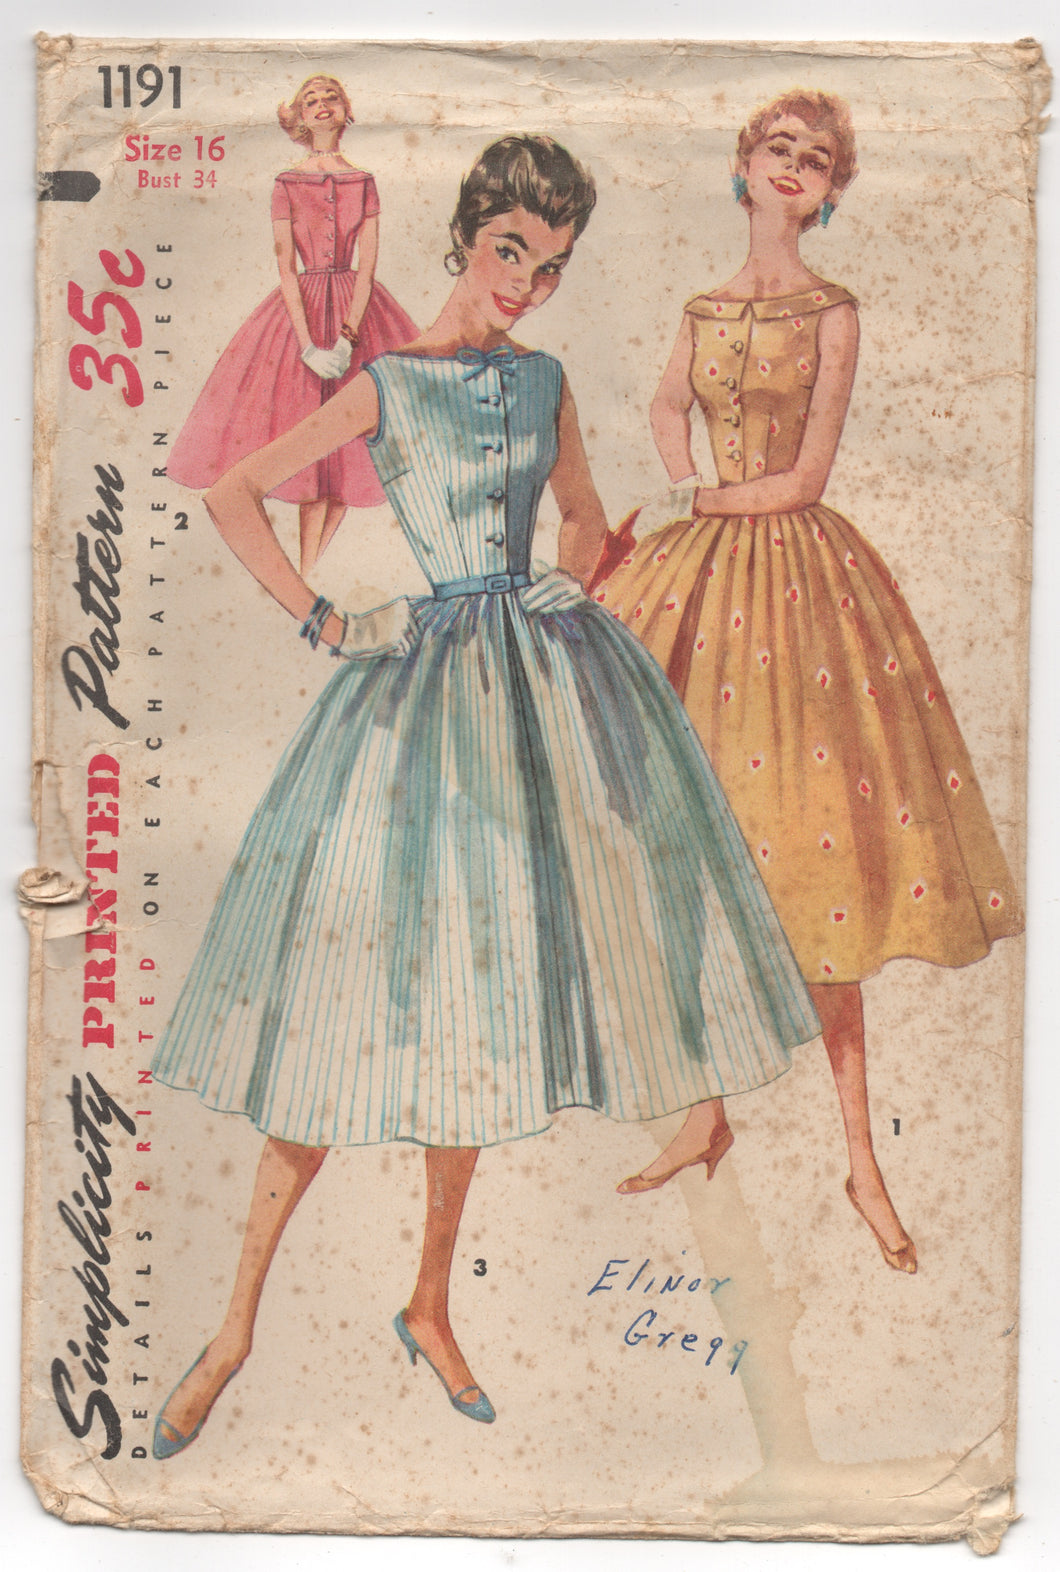 1950's Simplicity One-Piece Dress with Full Skirt with Bateau Neckline and Collar - Bust 34